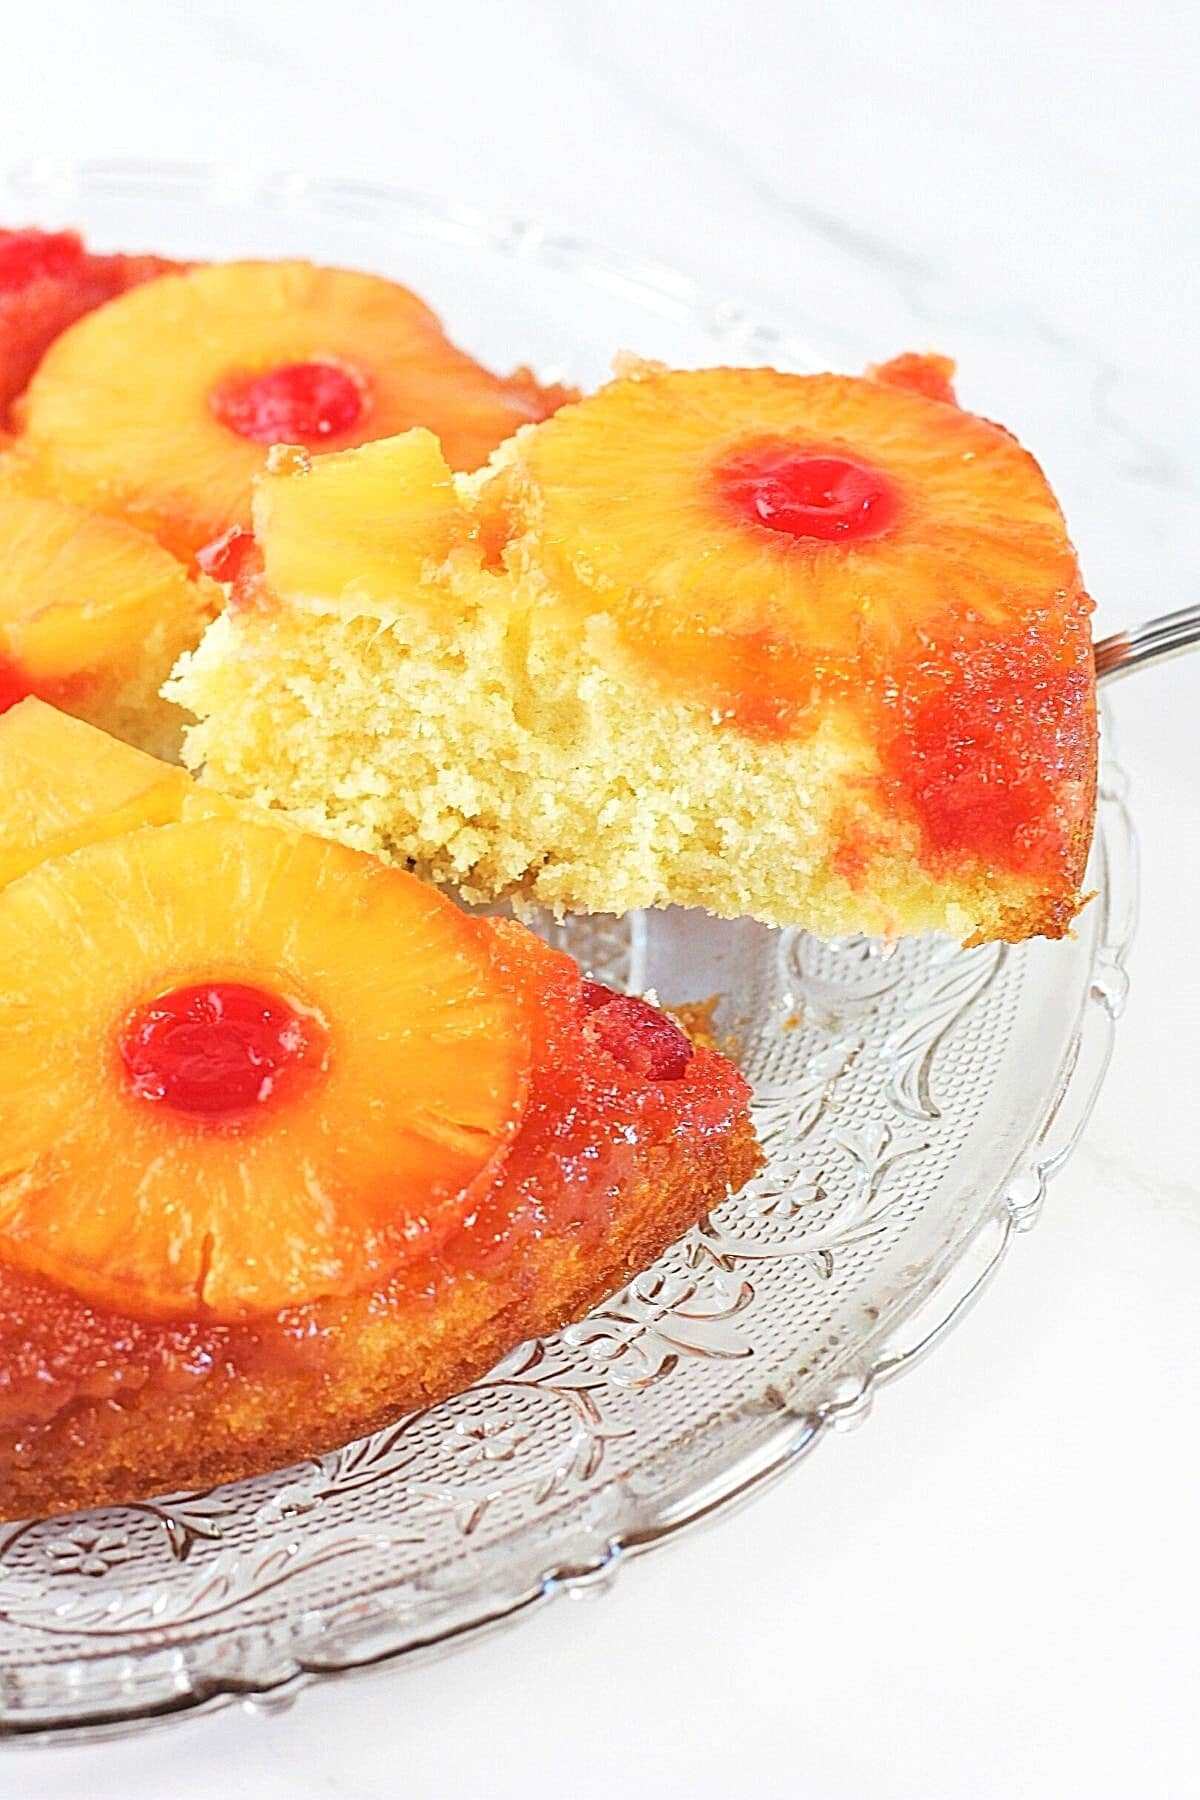 piece of pineapple upside-down cake being lifted from the whole cake with a cake server